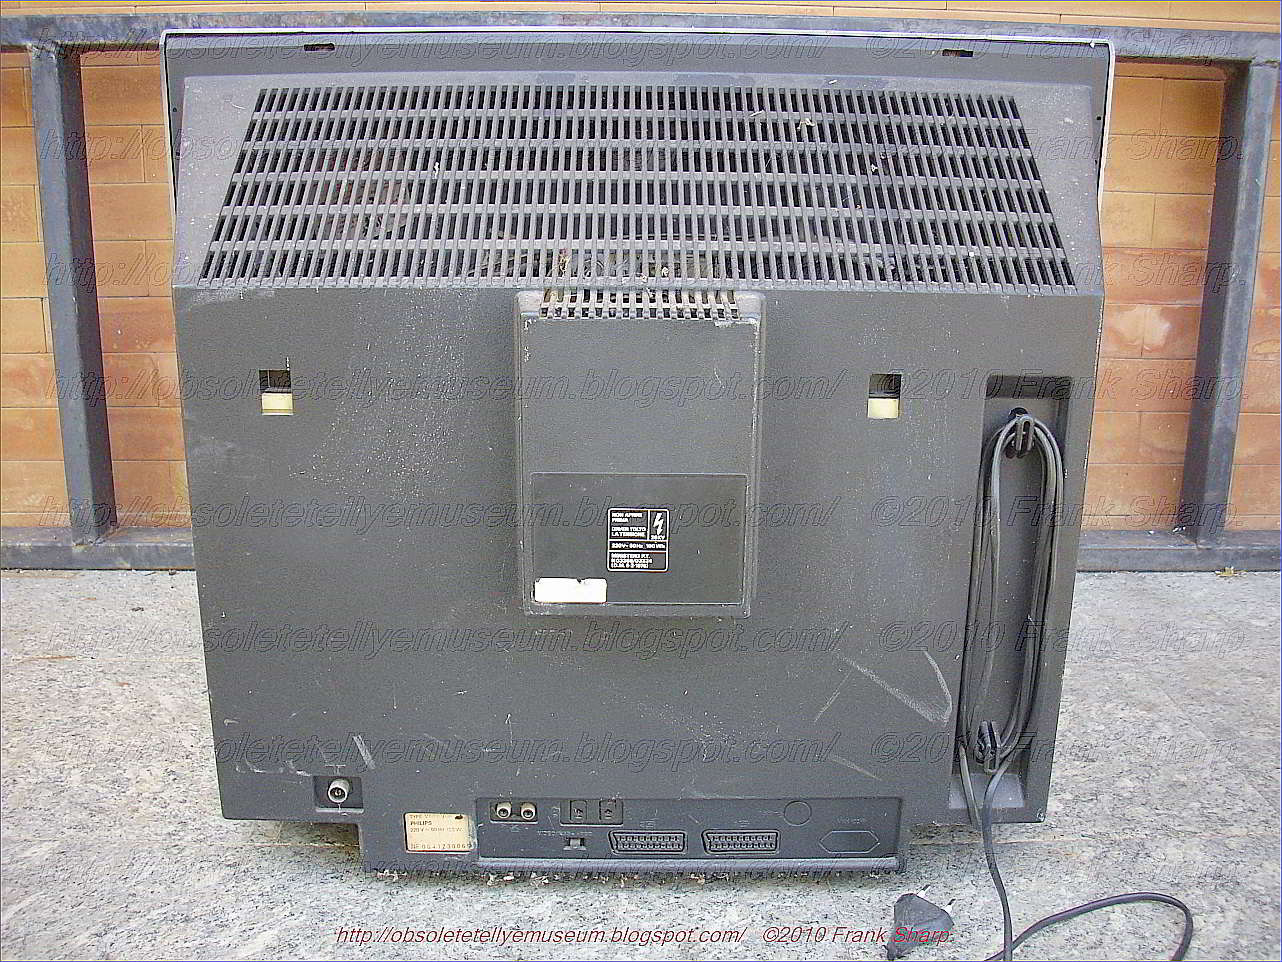 Obsolete Technology Tellye Philips Stereo Receiver V6820 Besides 50 Gfci Breaker Wiring Diagram Furthermore Hot Tub 220 The Matchline Is A 26 Inches 66cm Color Monitor Television With Top Features